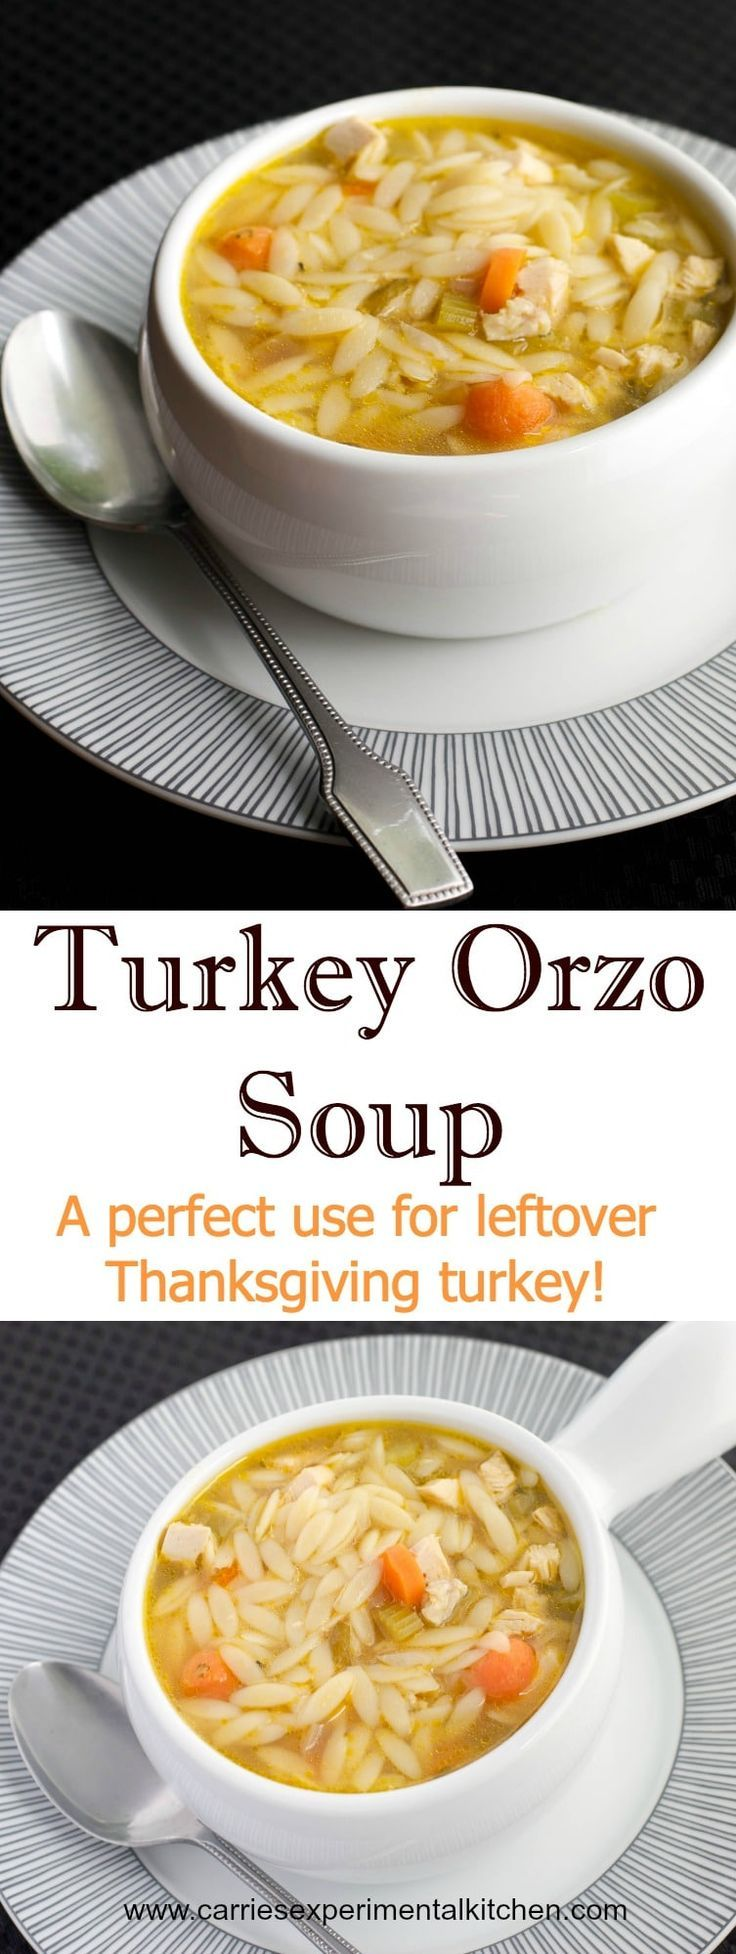 This Turkey Orzo Soup is a perfect use for leftover Thanksgiving turkey. Try substituting Sunday's leftover roasted chicken too! #soup #turkey #orzo